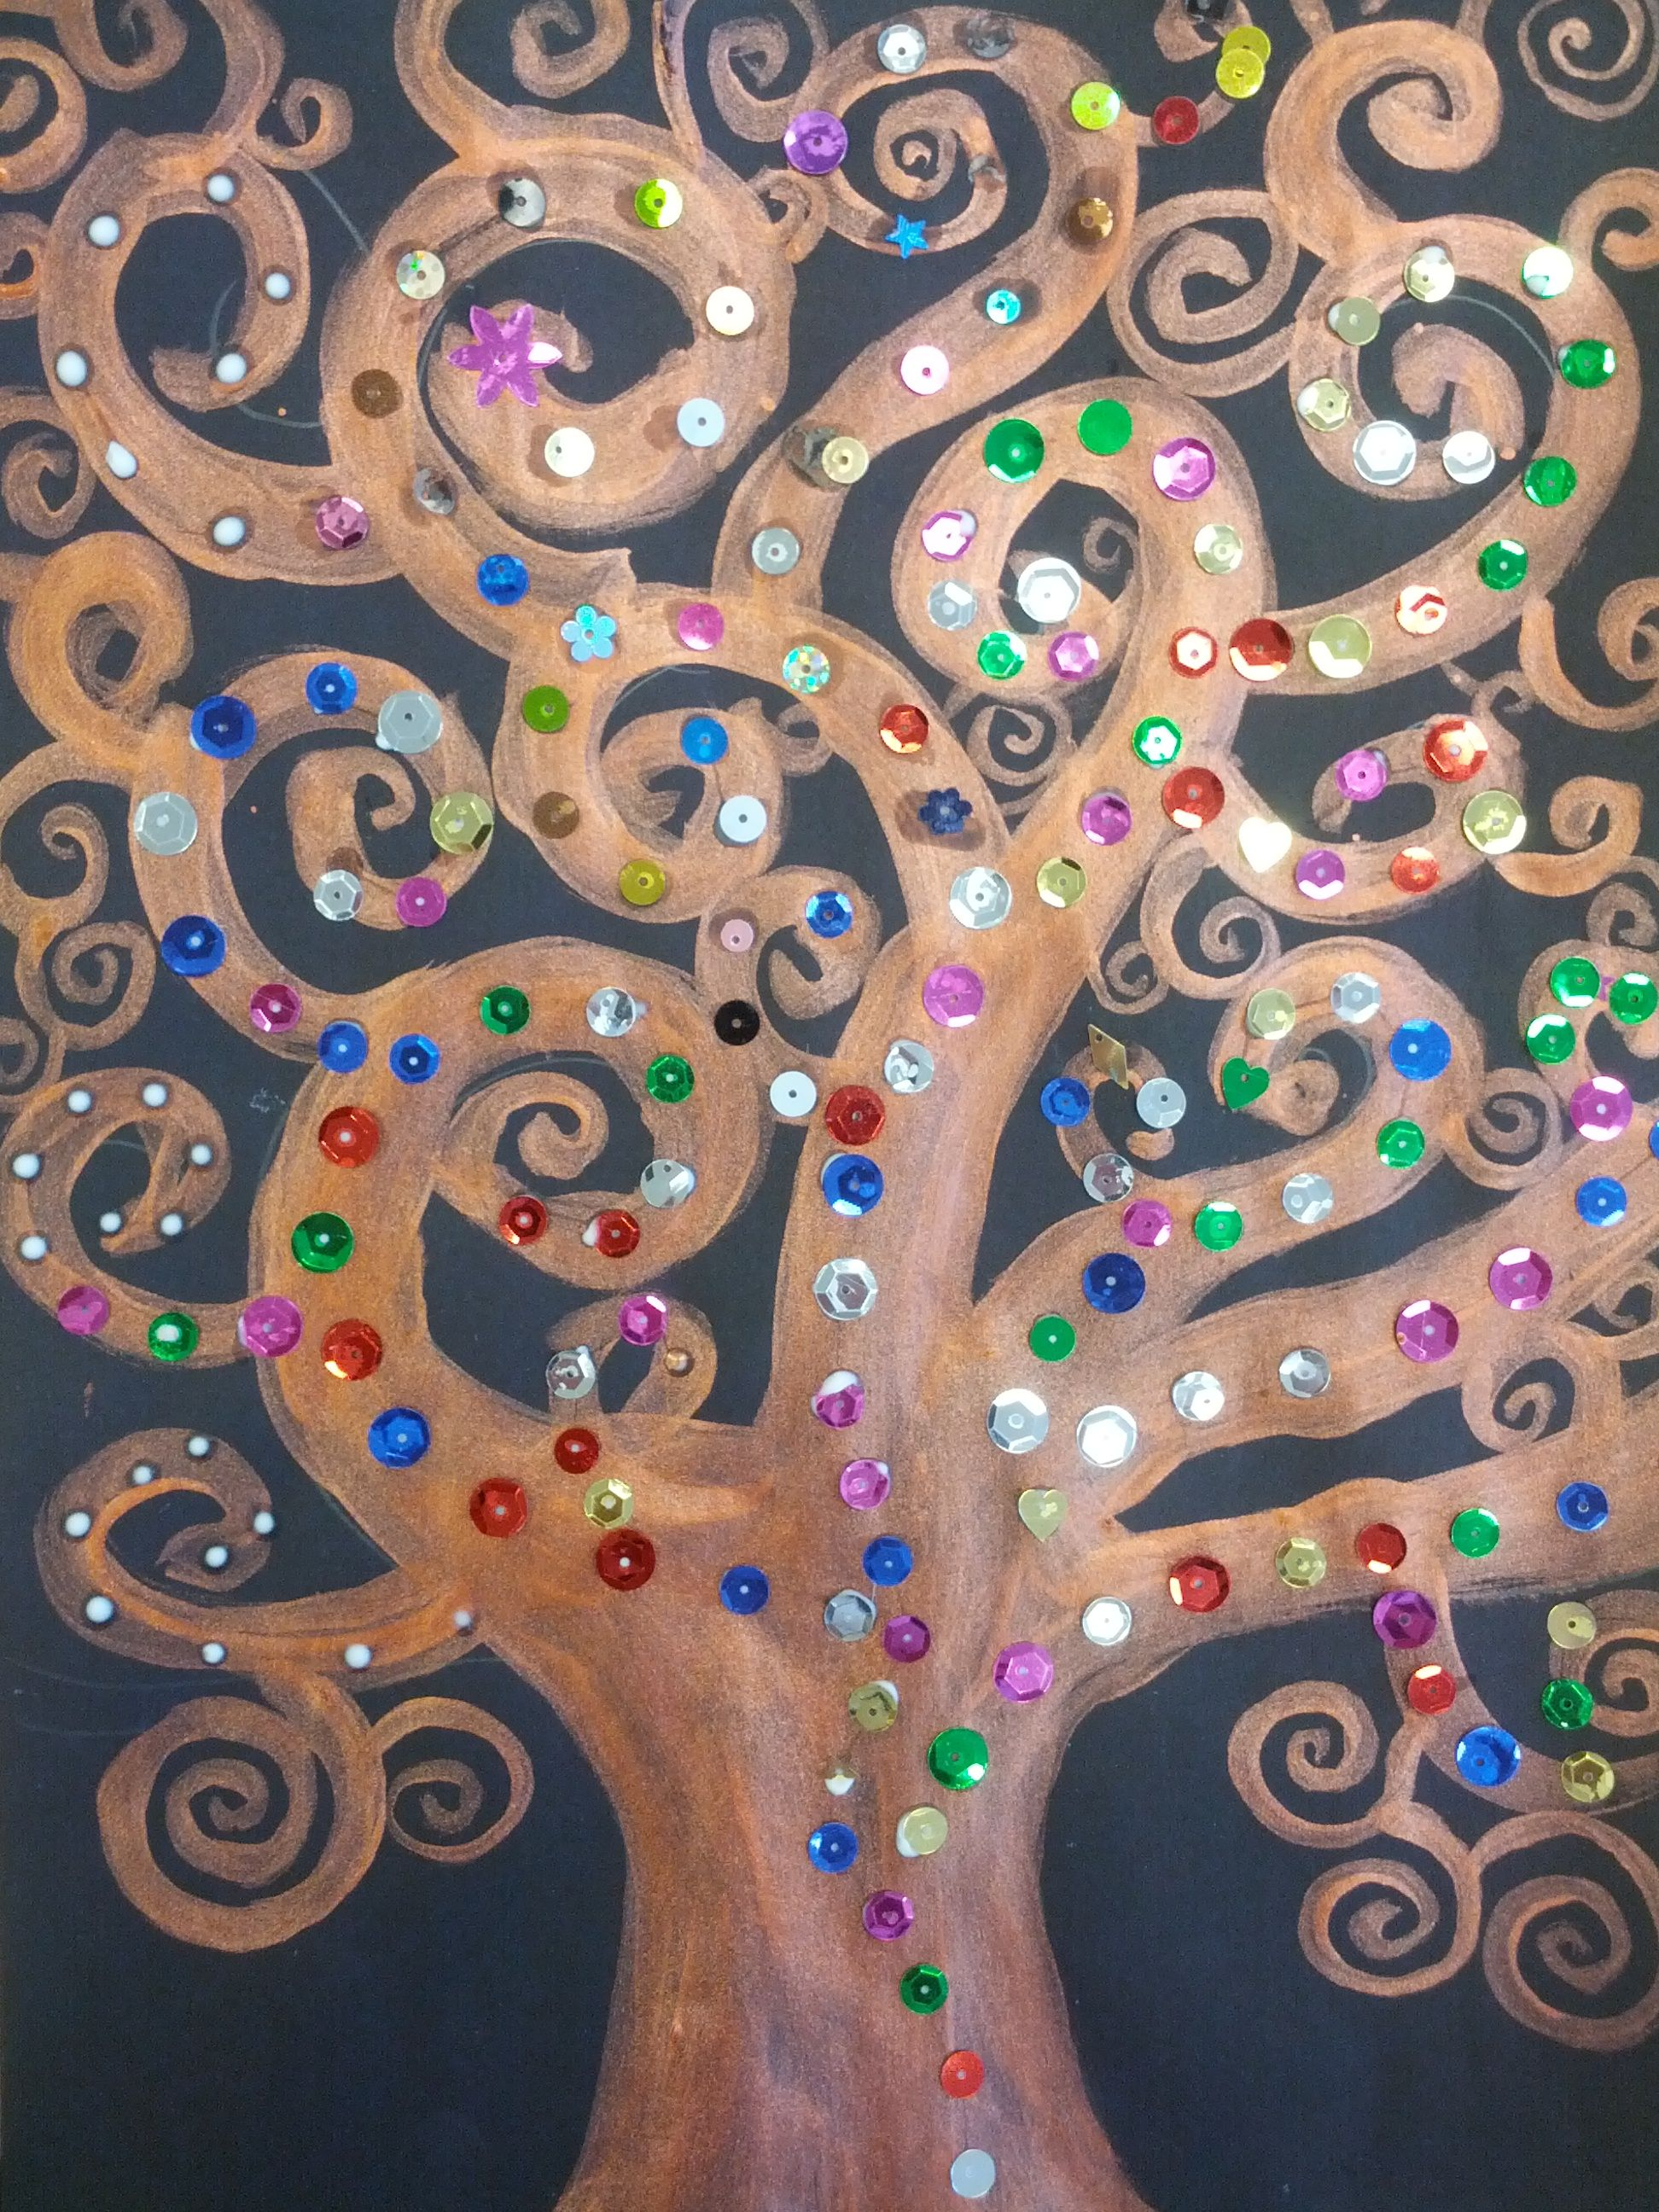 griffin art center klimt trees courtney behnken art